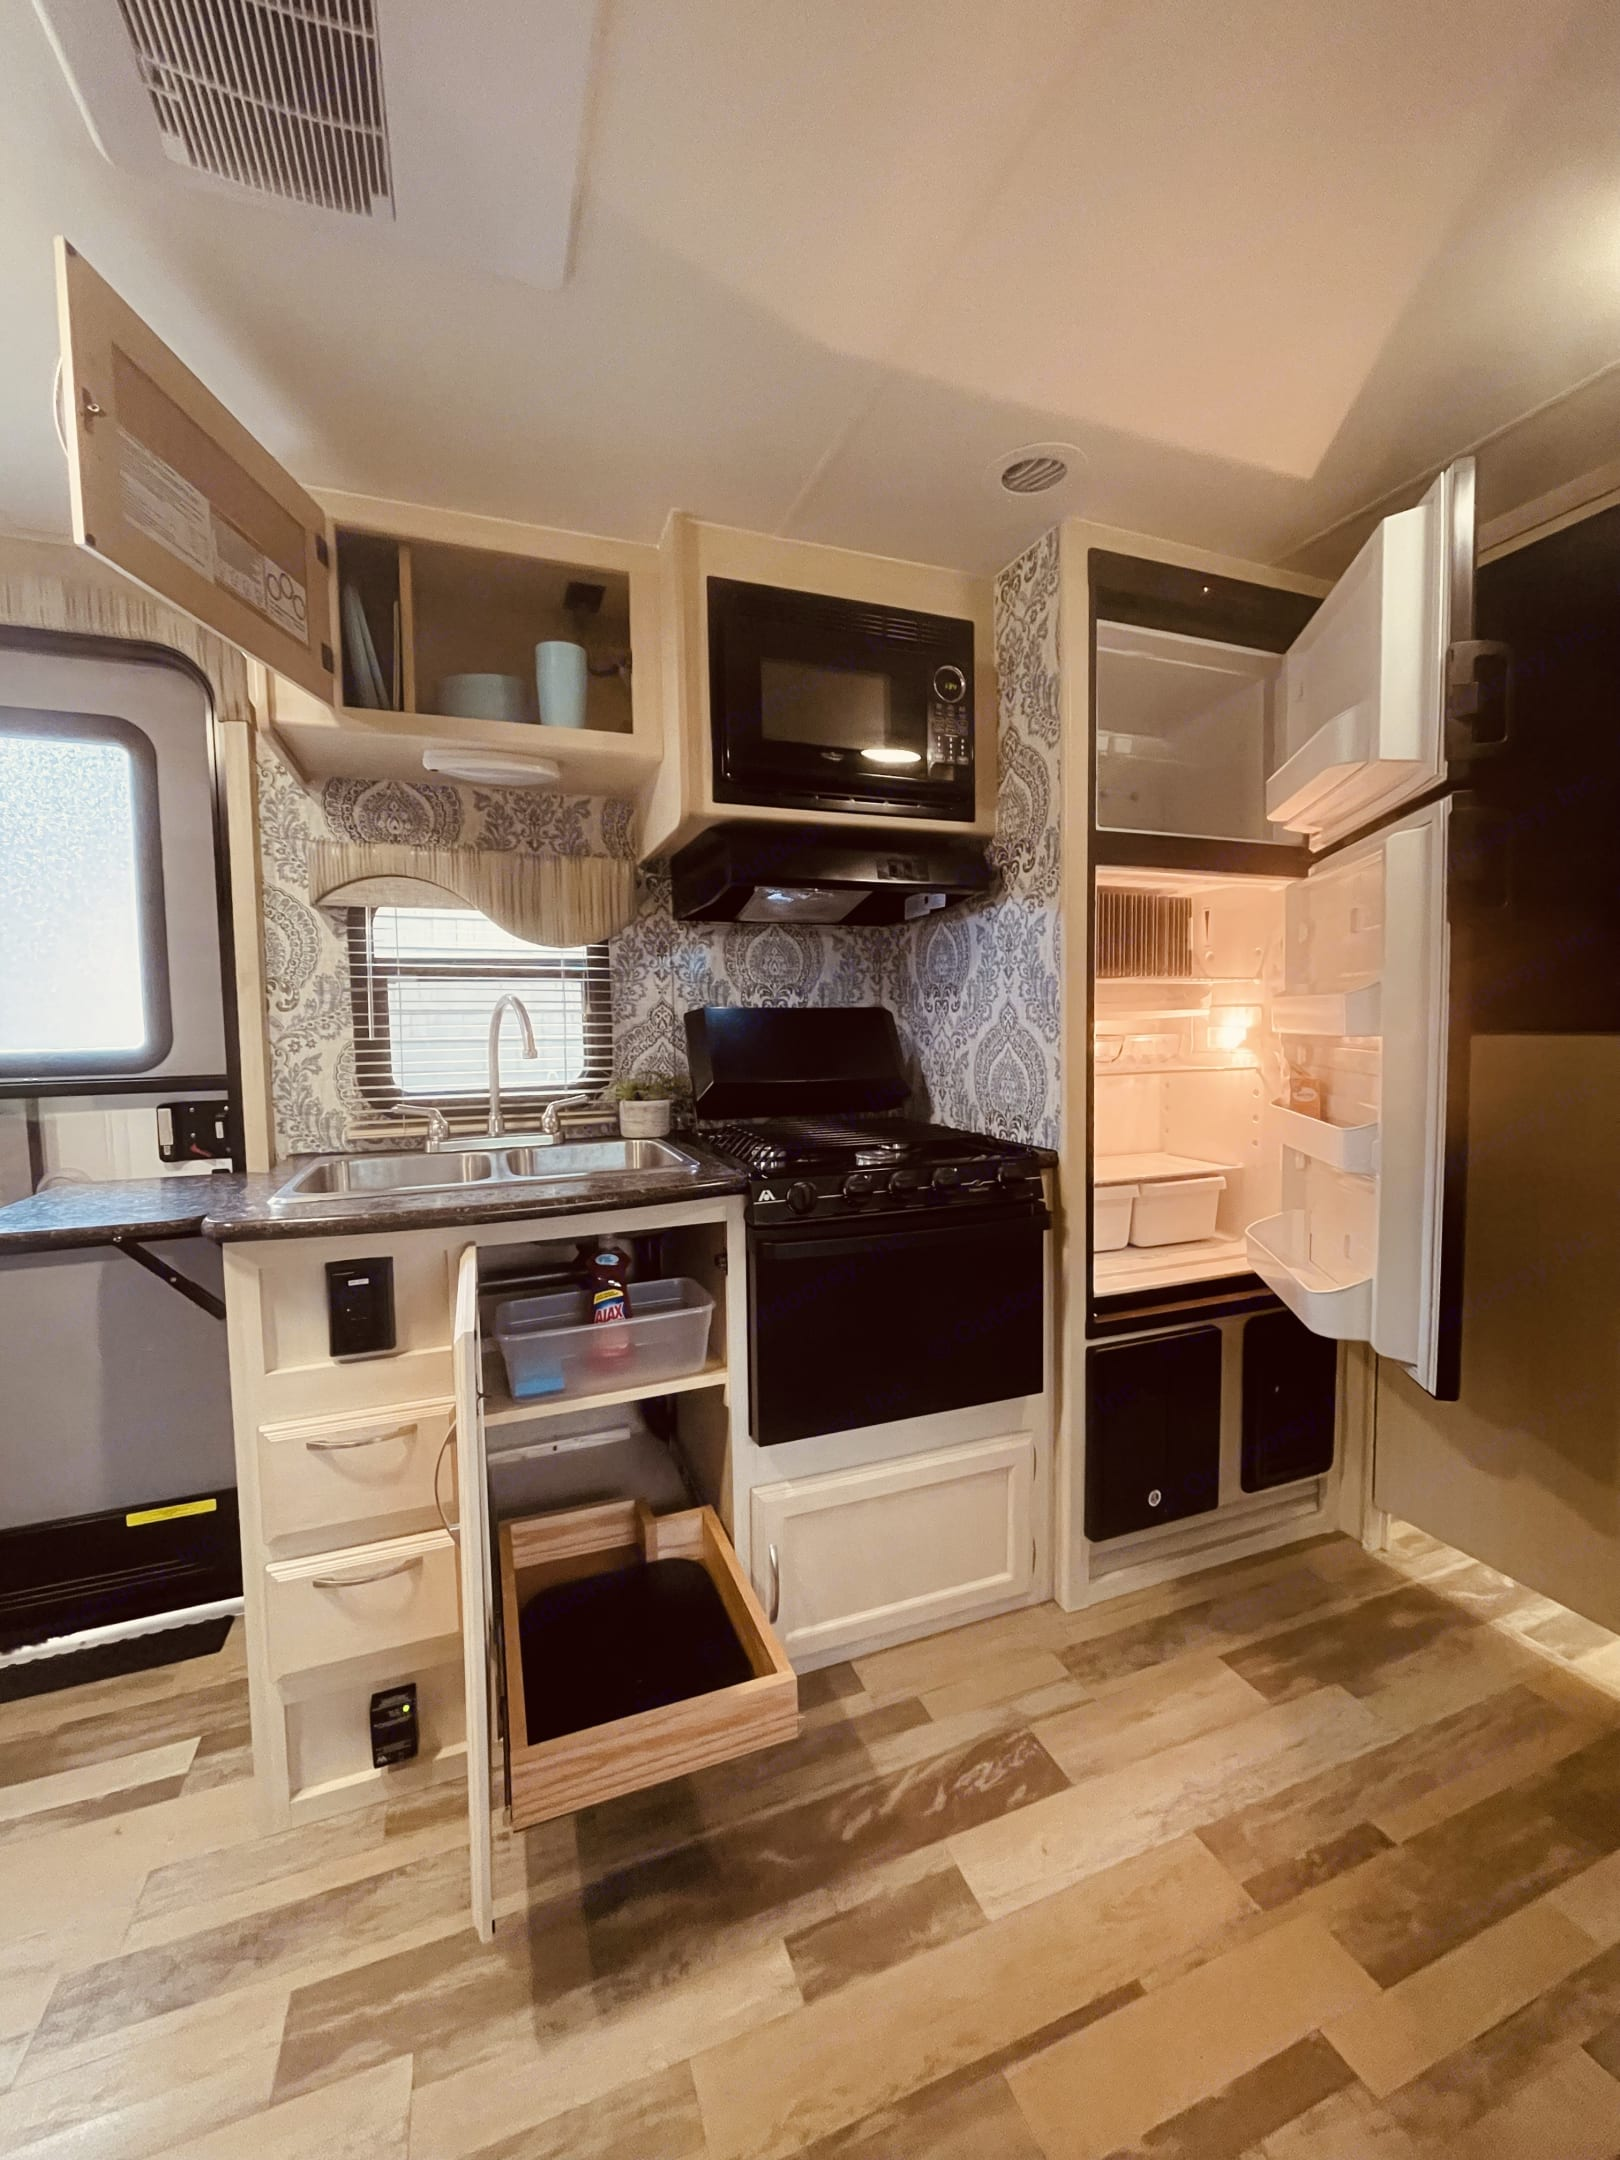 Counter top has a lift up section when you need extra counter space.  Perfect for prep work or put your drying mat there to dry dishes.. Winnebago Micro Minnie 2017